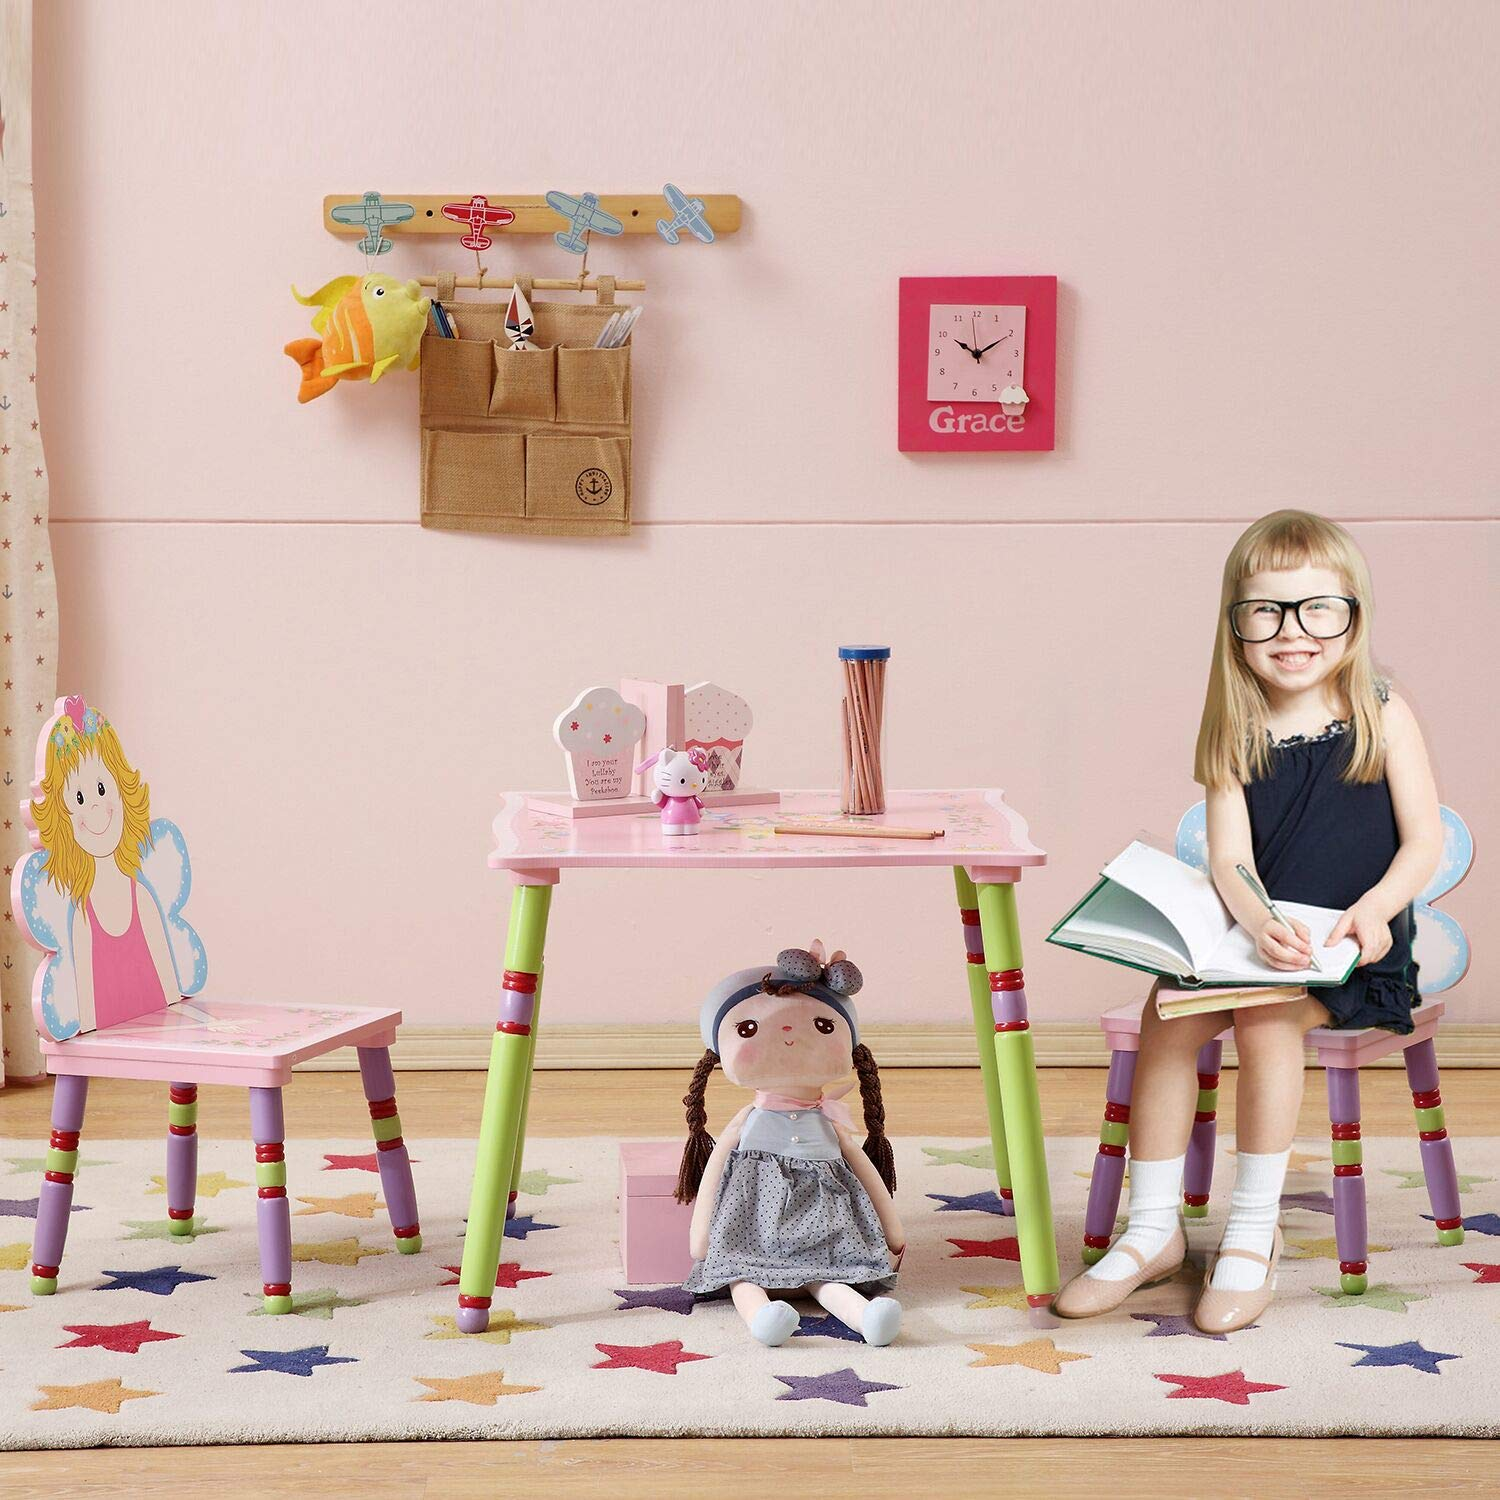 Phenomenal Wodeny Kids Table And Chairs Sets Wood Wooden Childrens Table And Chair Set Childs Desk And Chair Sets Pink With Cartoon Fairies Paintings For Gmtry Best Dining Table And Chair Ideas Images Gmtryco